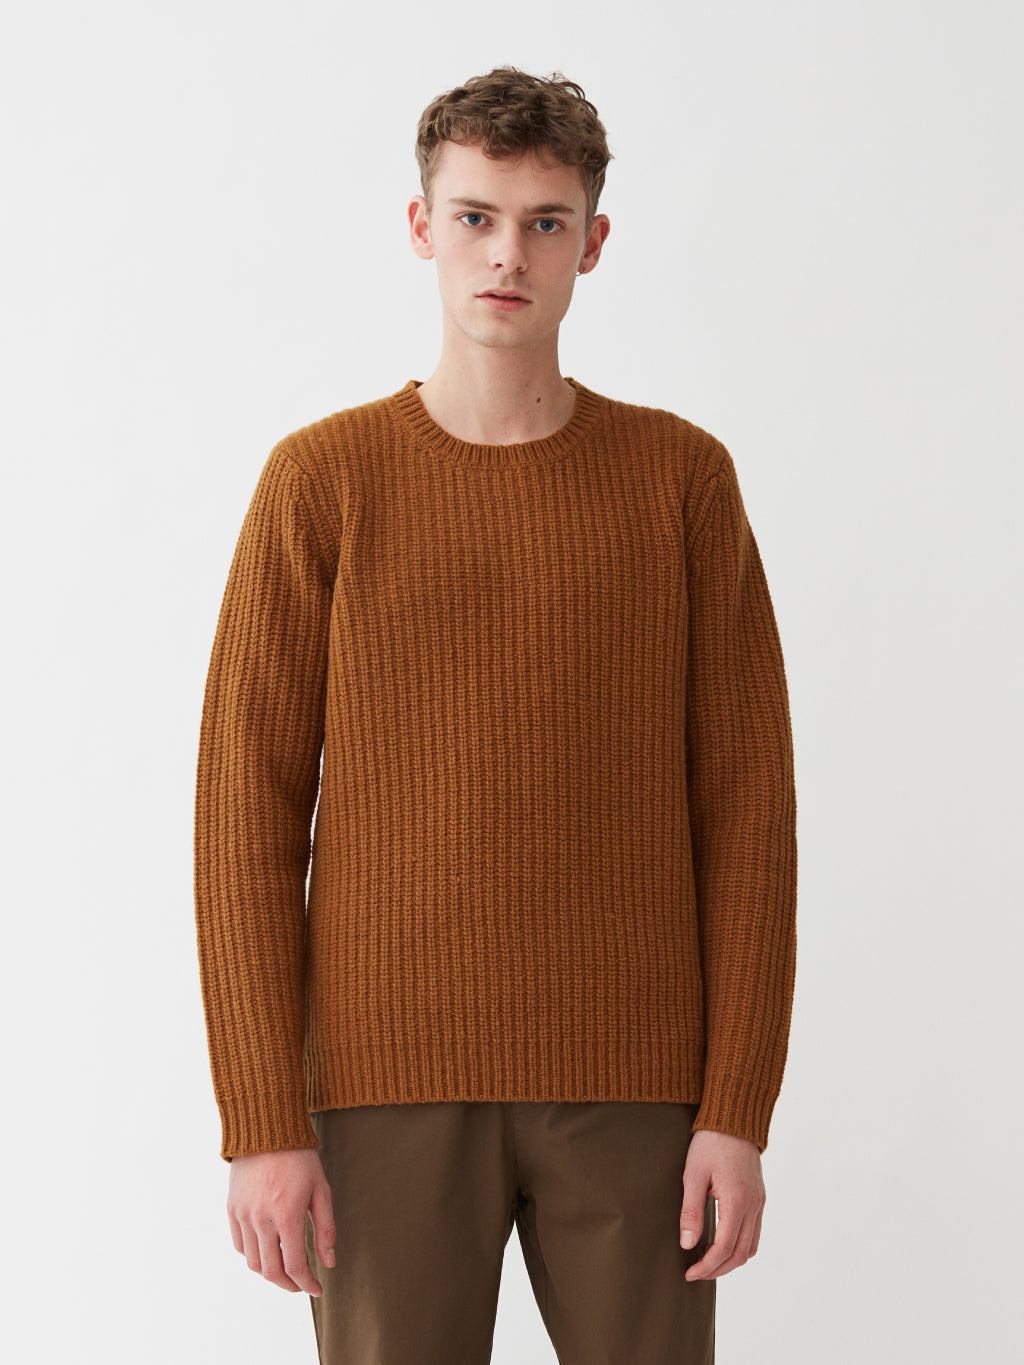 Cartona Lambswool Knit | Ocre